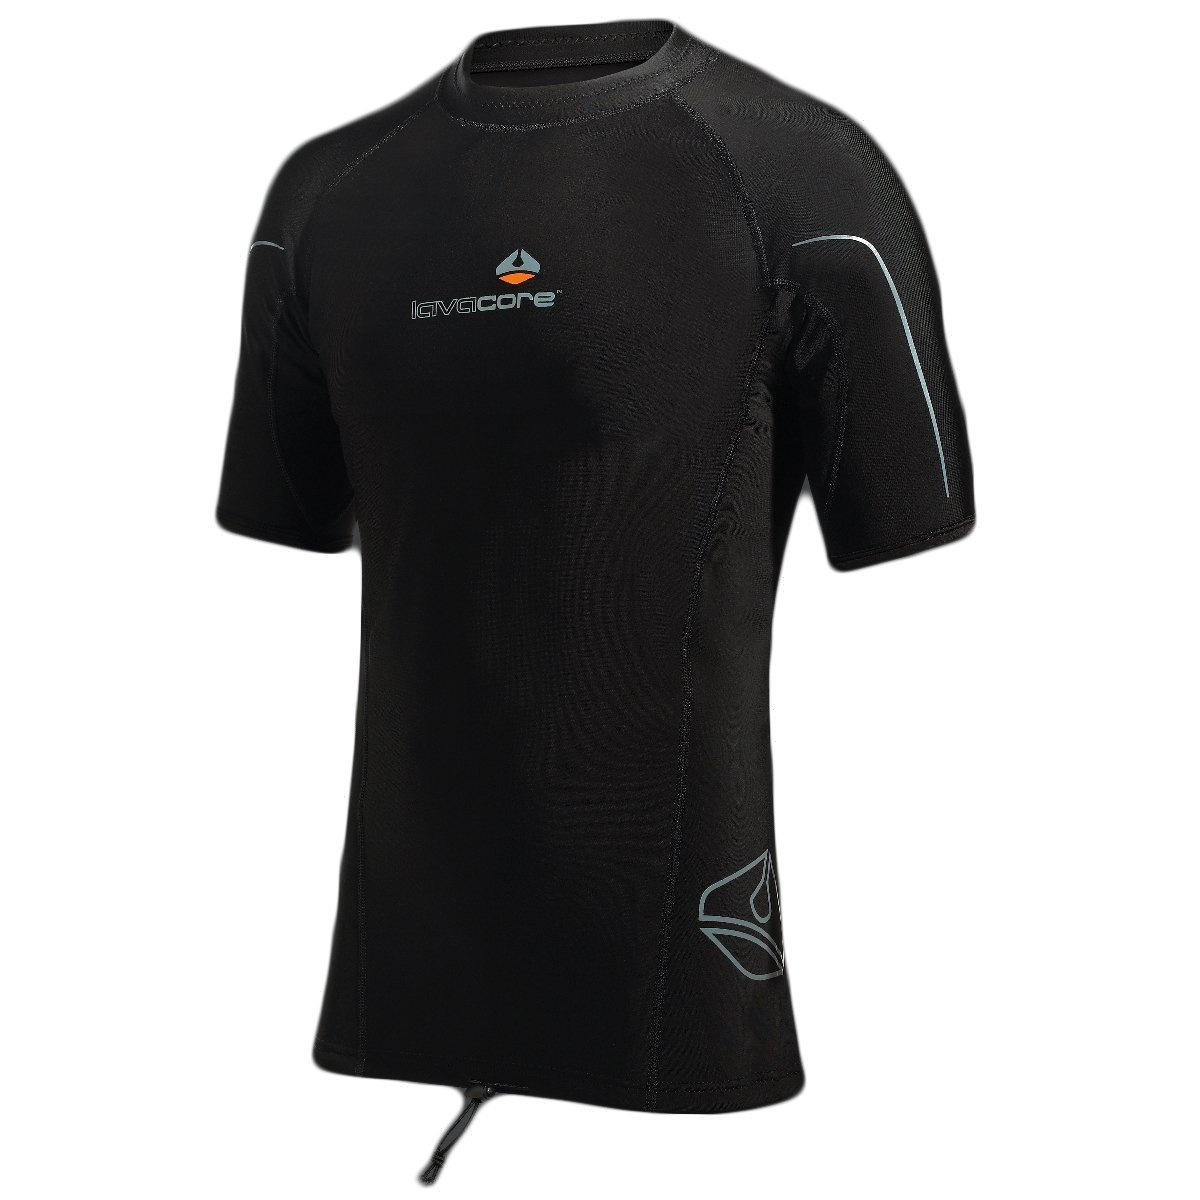 New Men's LavaCore Trilaminate Polytherm Short Sleeve Shirt (2X-Large) for Extreme Watersports